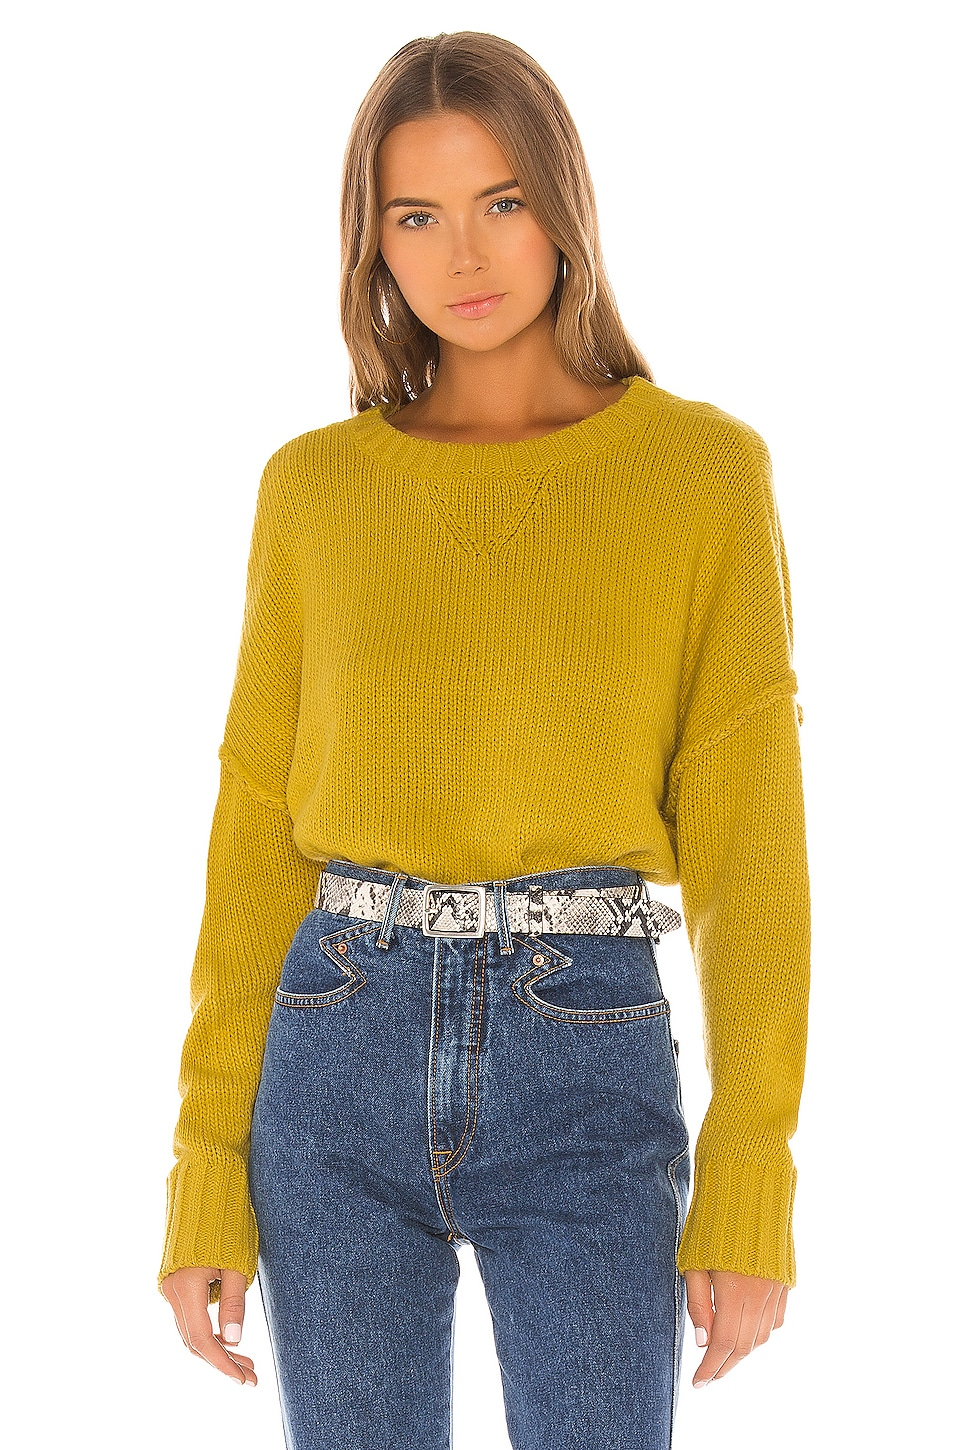 Lovers + Friends Love Stoned Sweater in Yellow